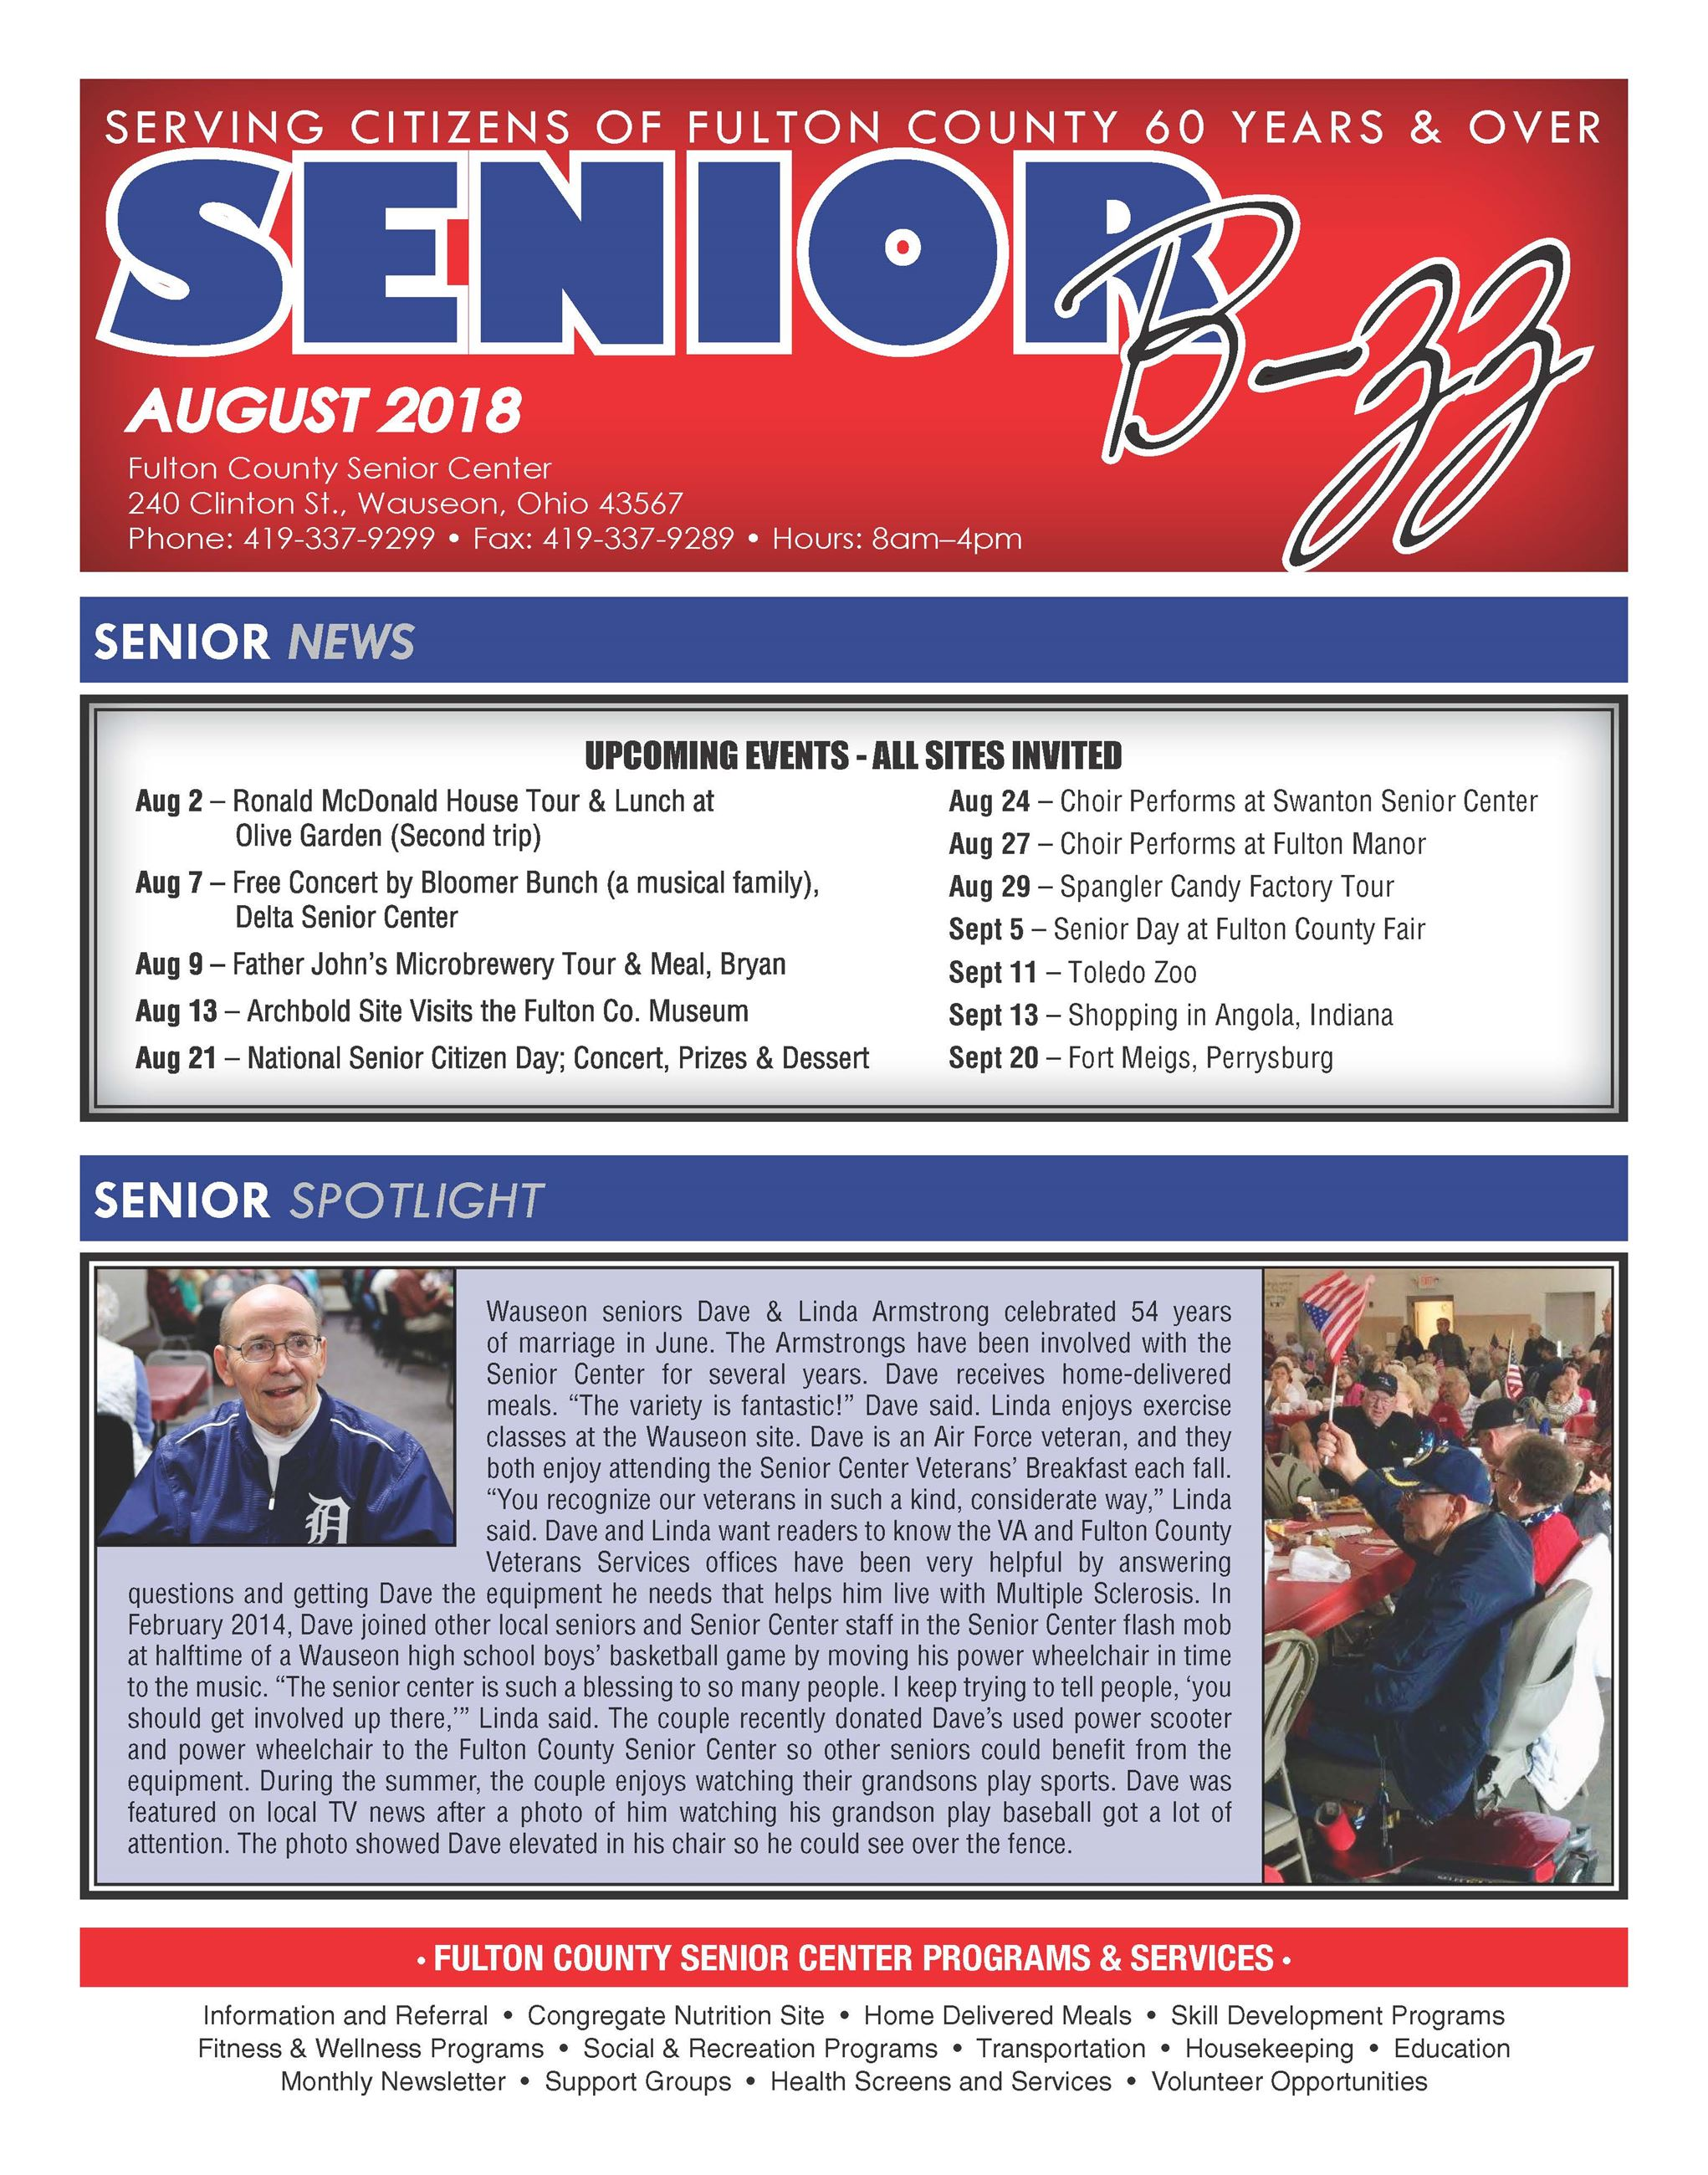 Front page of the August 2018 Senior B-zz